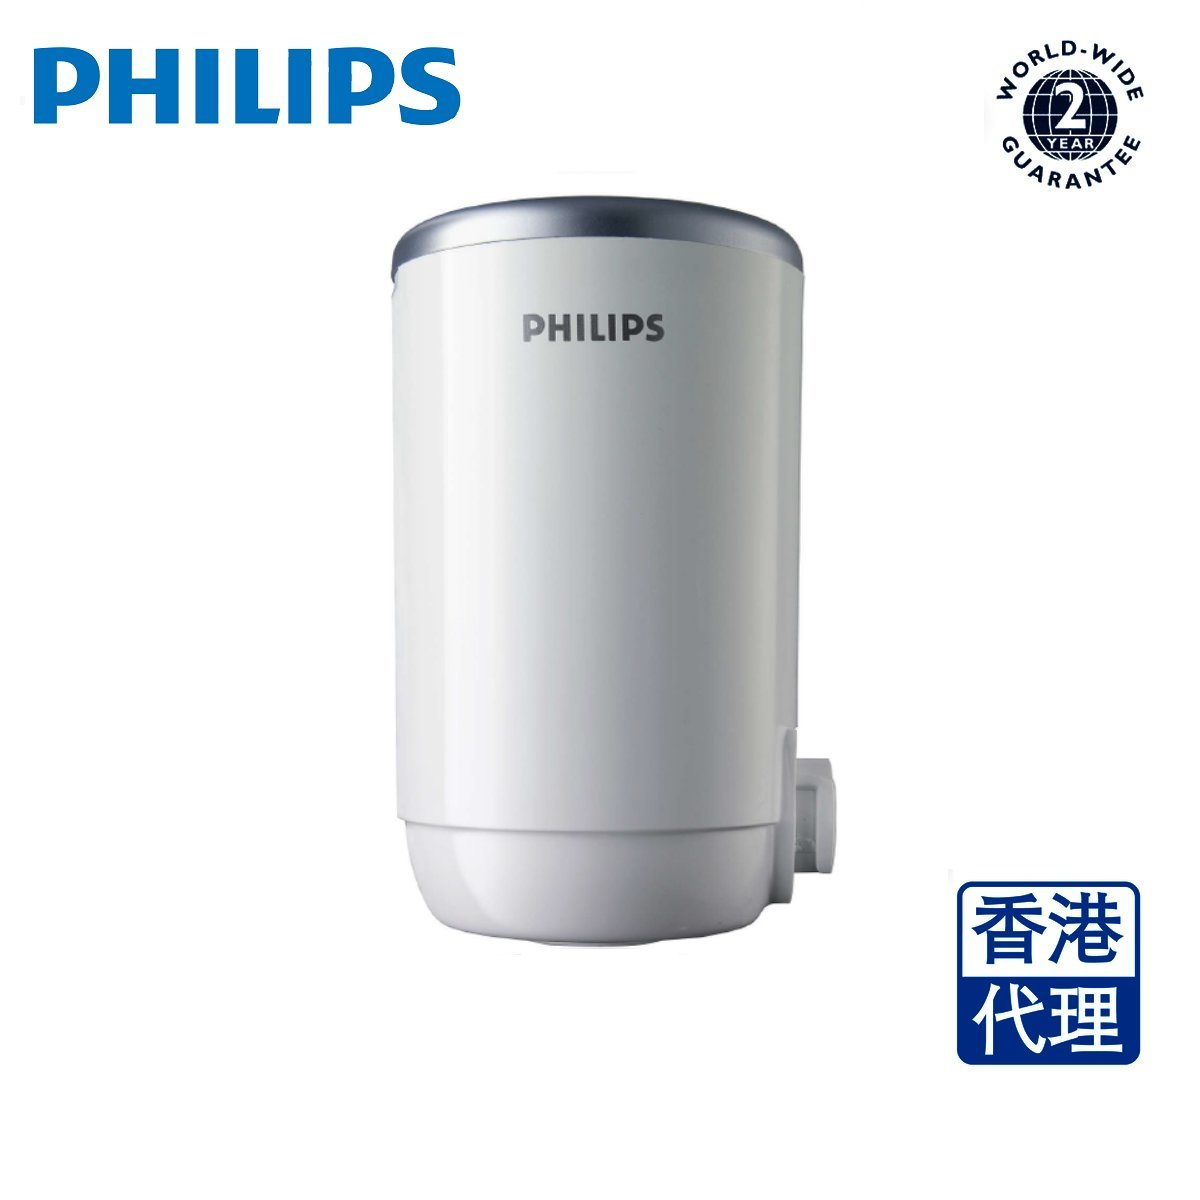 On tap water purifier WP3922